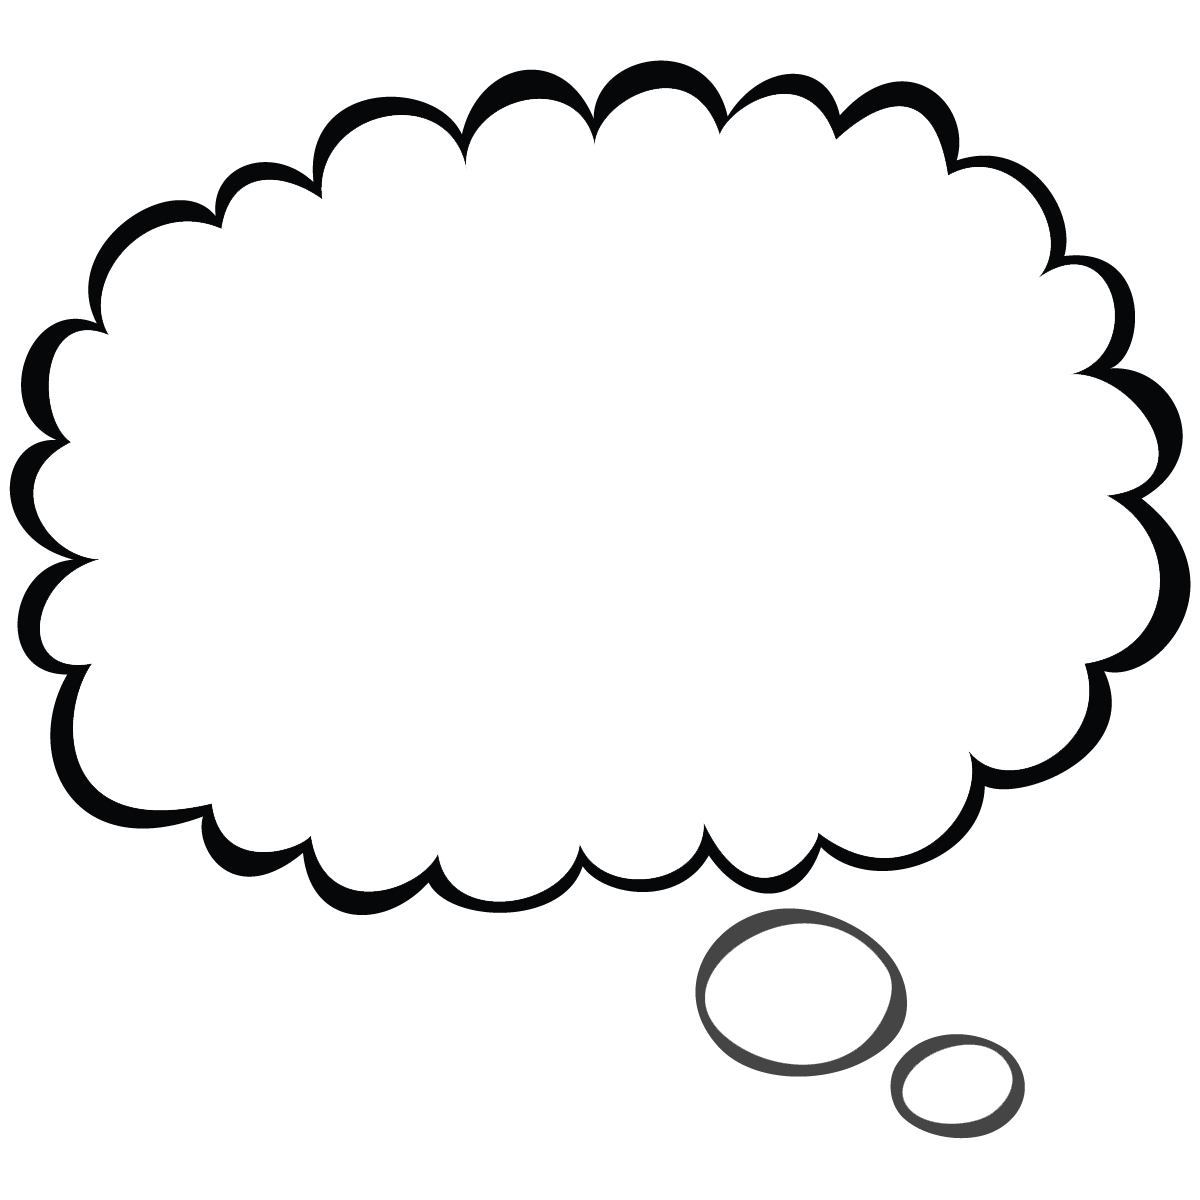 Bubble svg #2, Download drawings